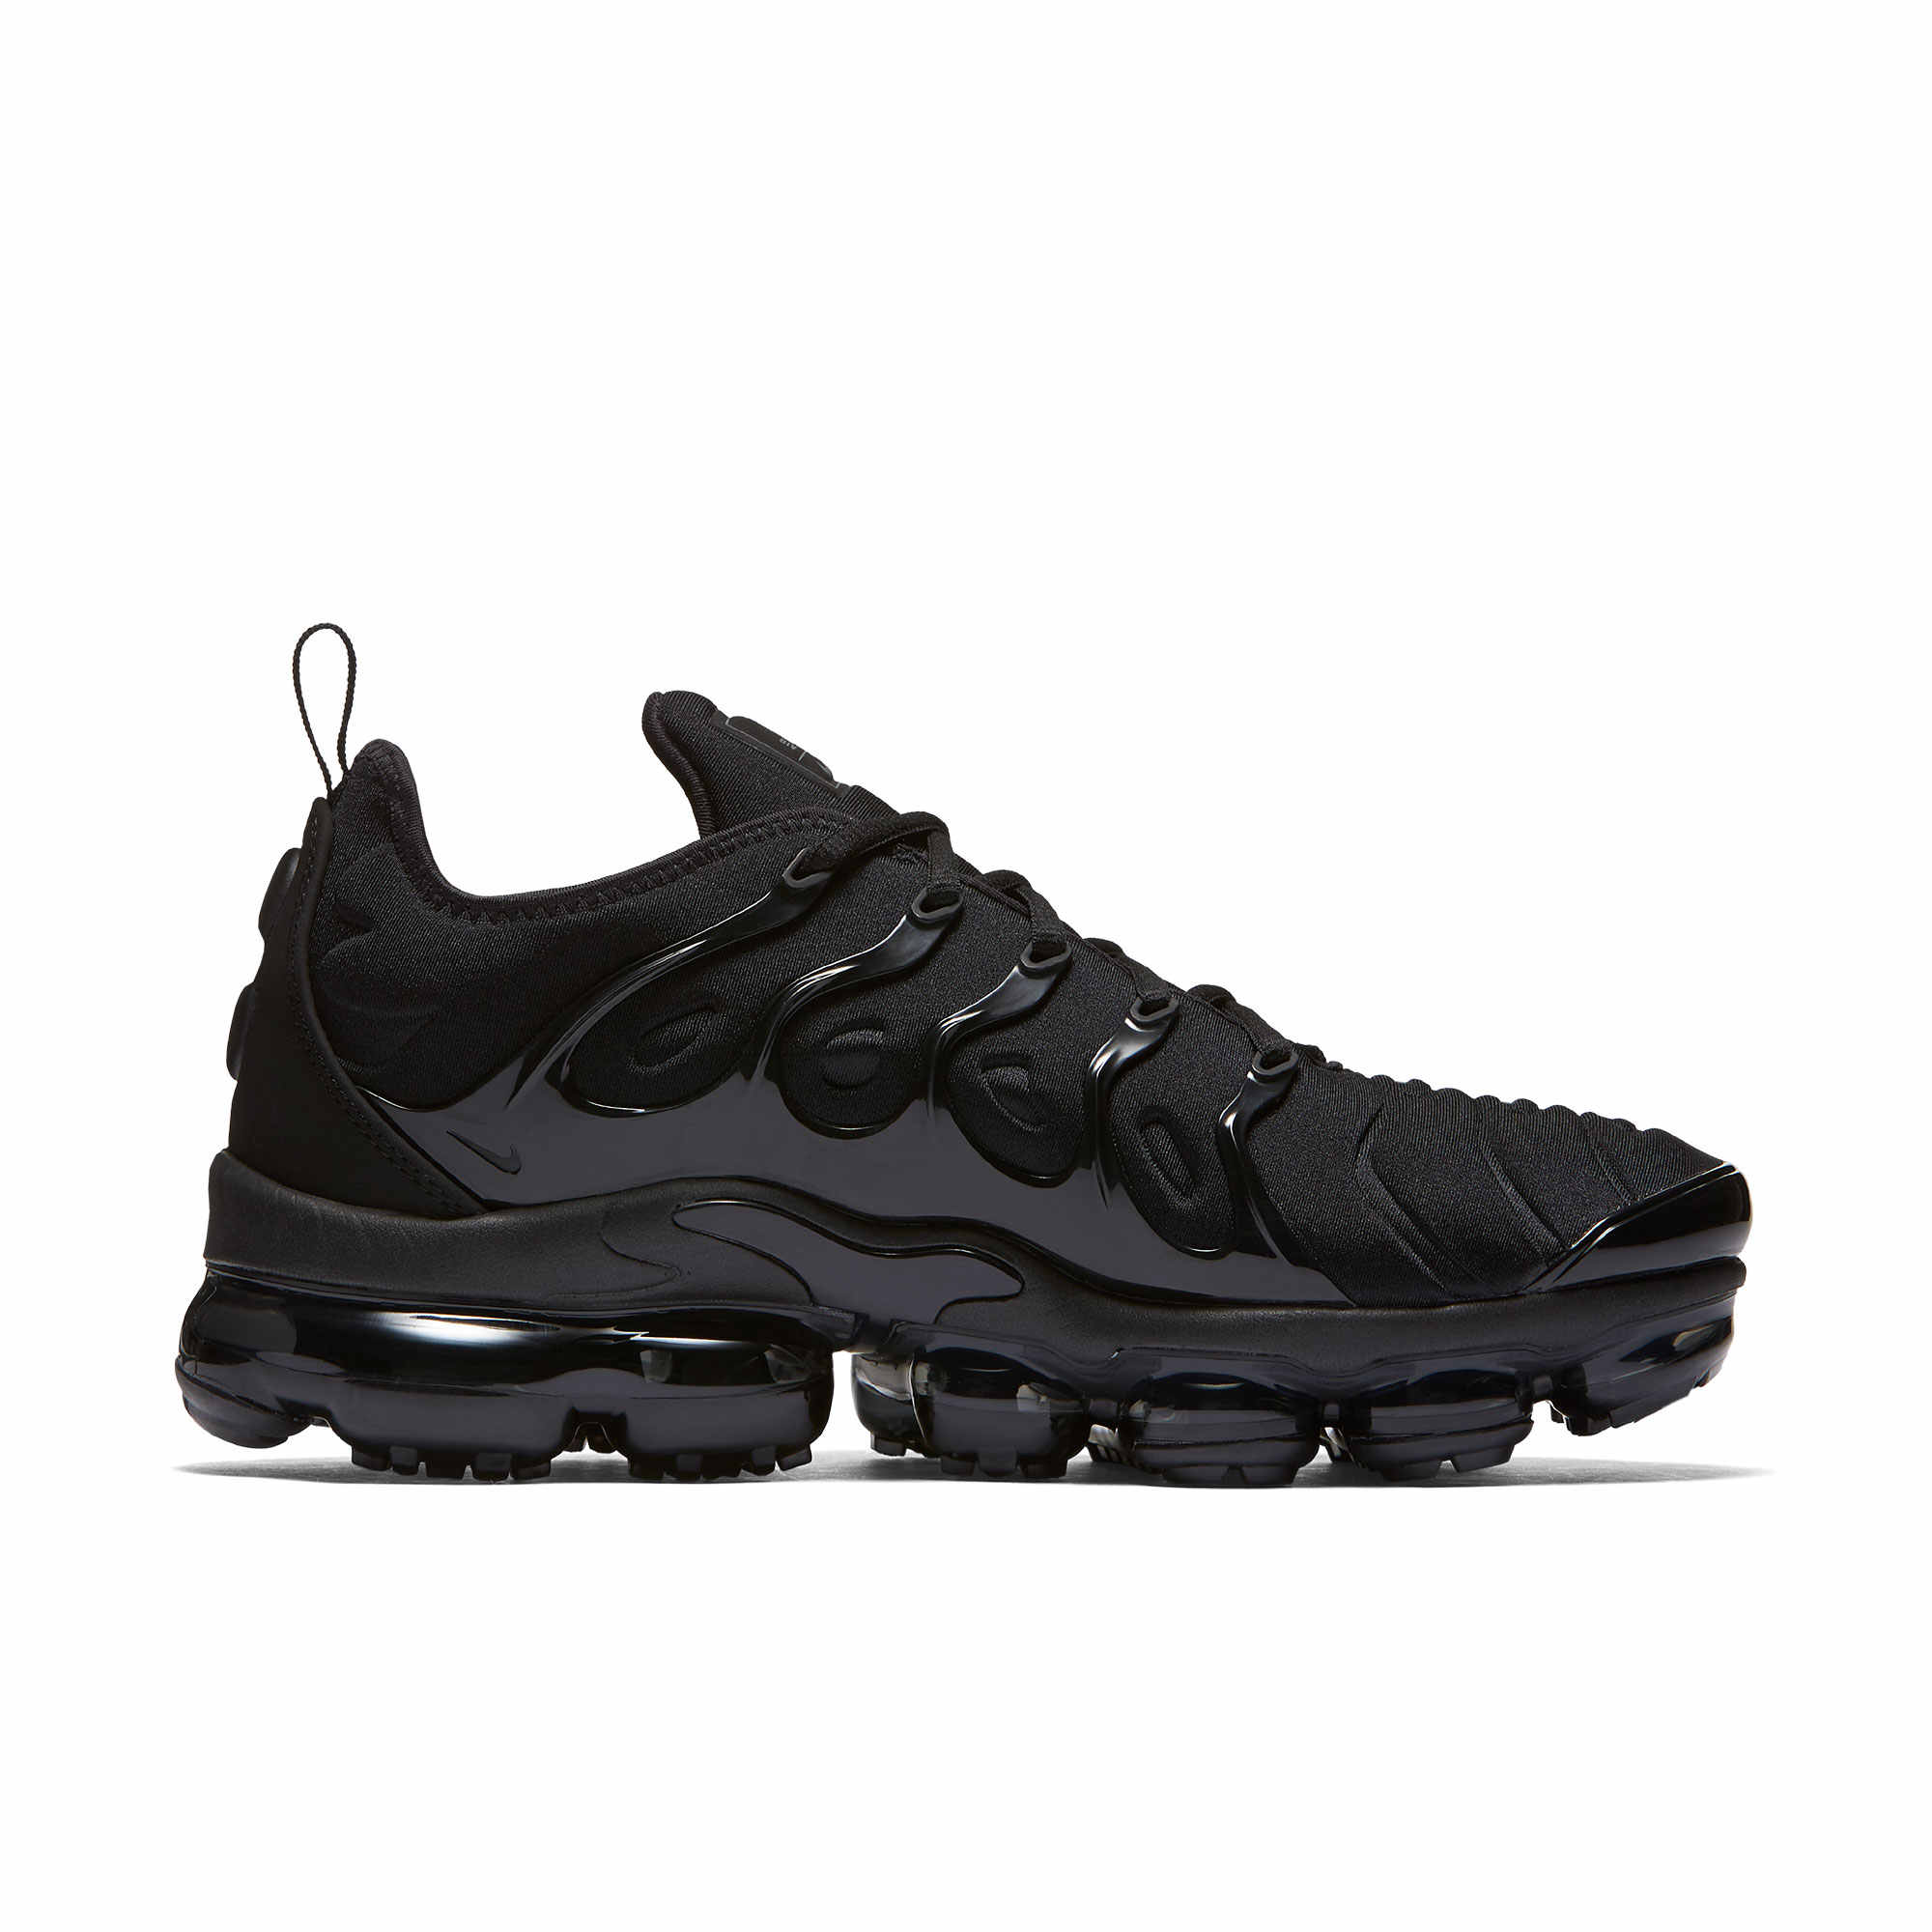 c1bcd049a0d ... Original New Arrival Authentic NIKE AIR VAPORMAX PLUS Mens Running  Shoes Sneakers 924453 Outdoor Walking jogging ...